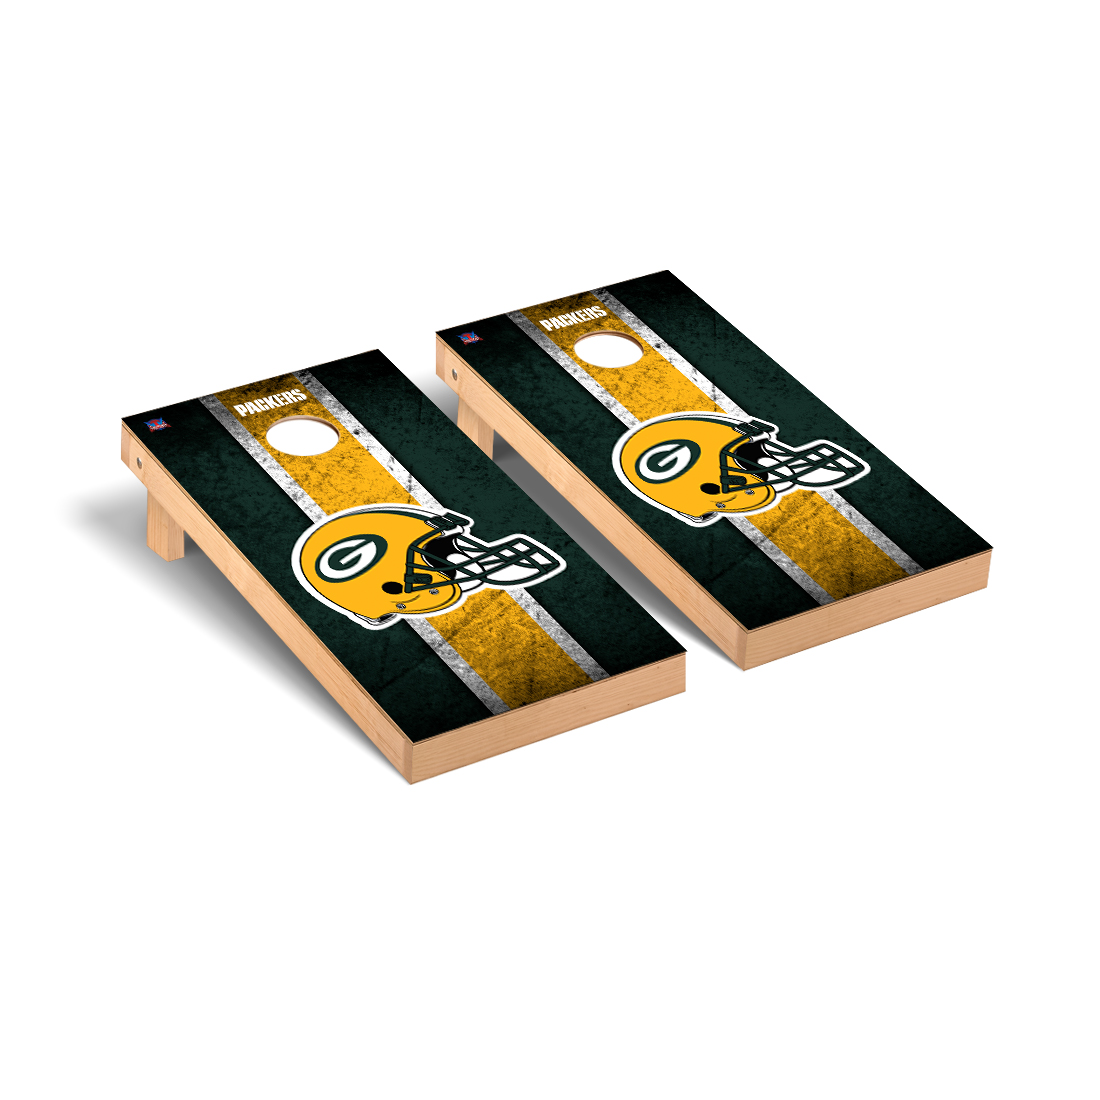 Green Bay Packers NFL Football Cornhole Game Set Vintage Version